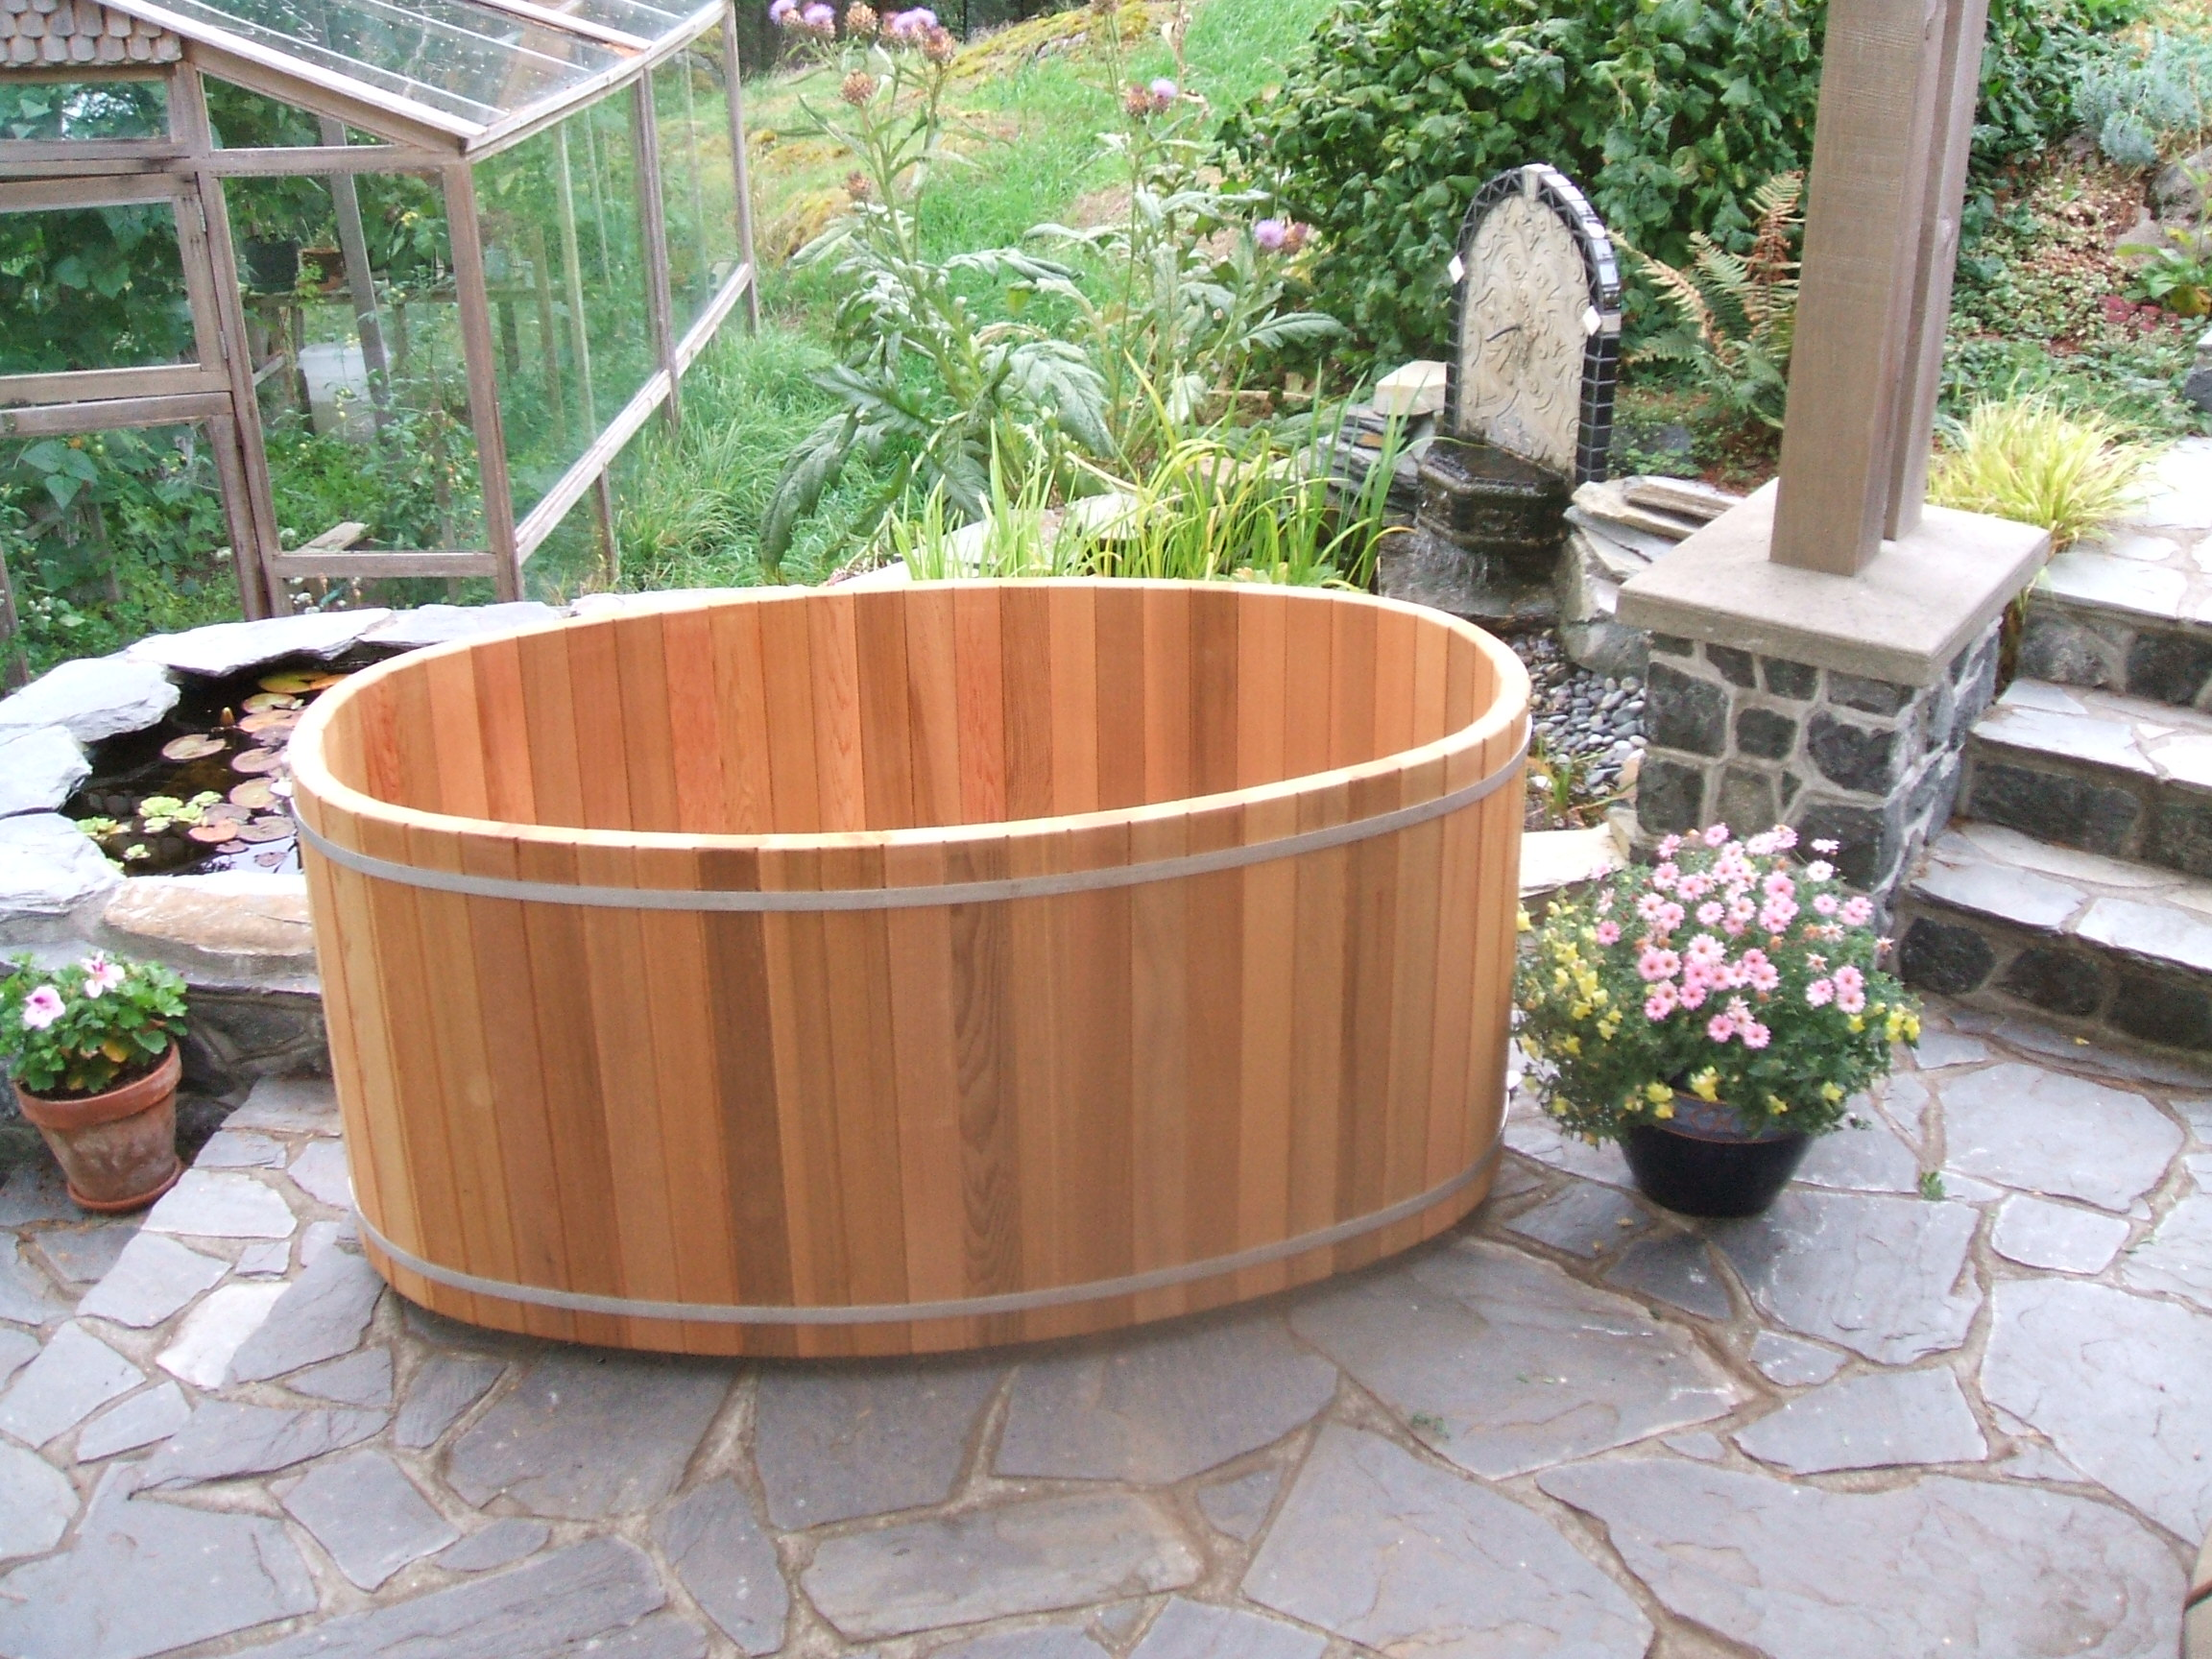 alibaba japanese on tube tubs product detail tub spa wooden buy com hot person outdoor